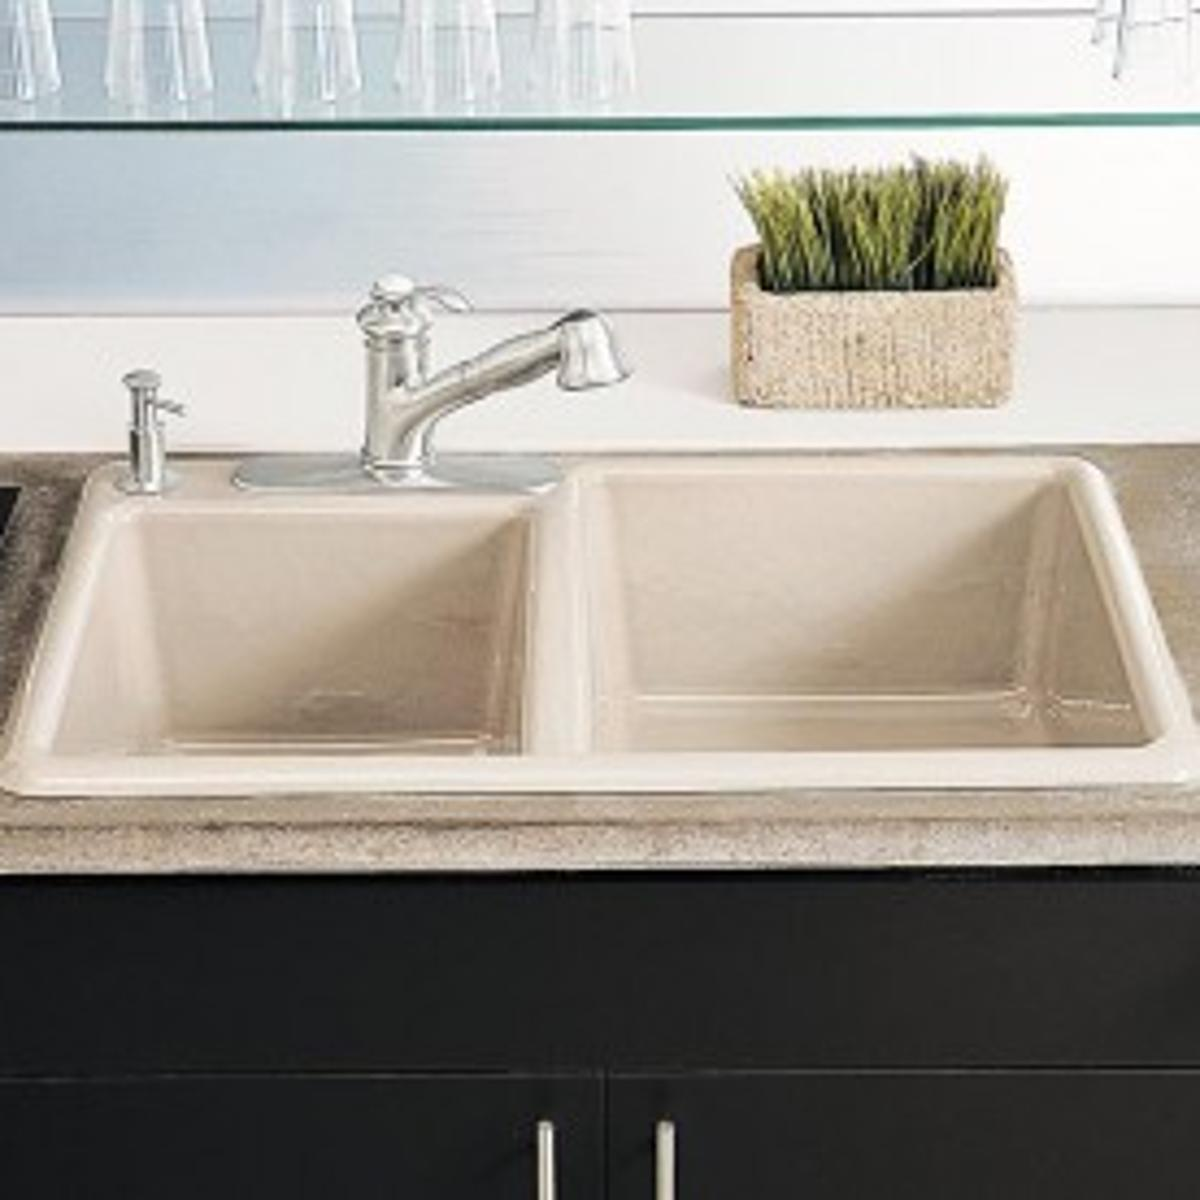 The Pros Cons Of Undermount Vs Top Mount Sinks Home Garden Tucson Com